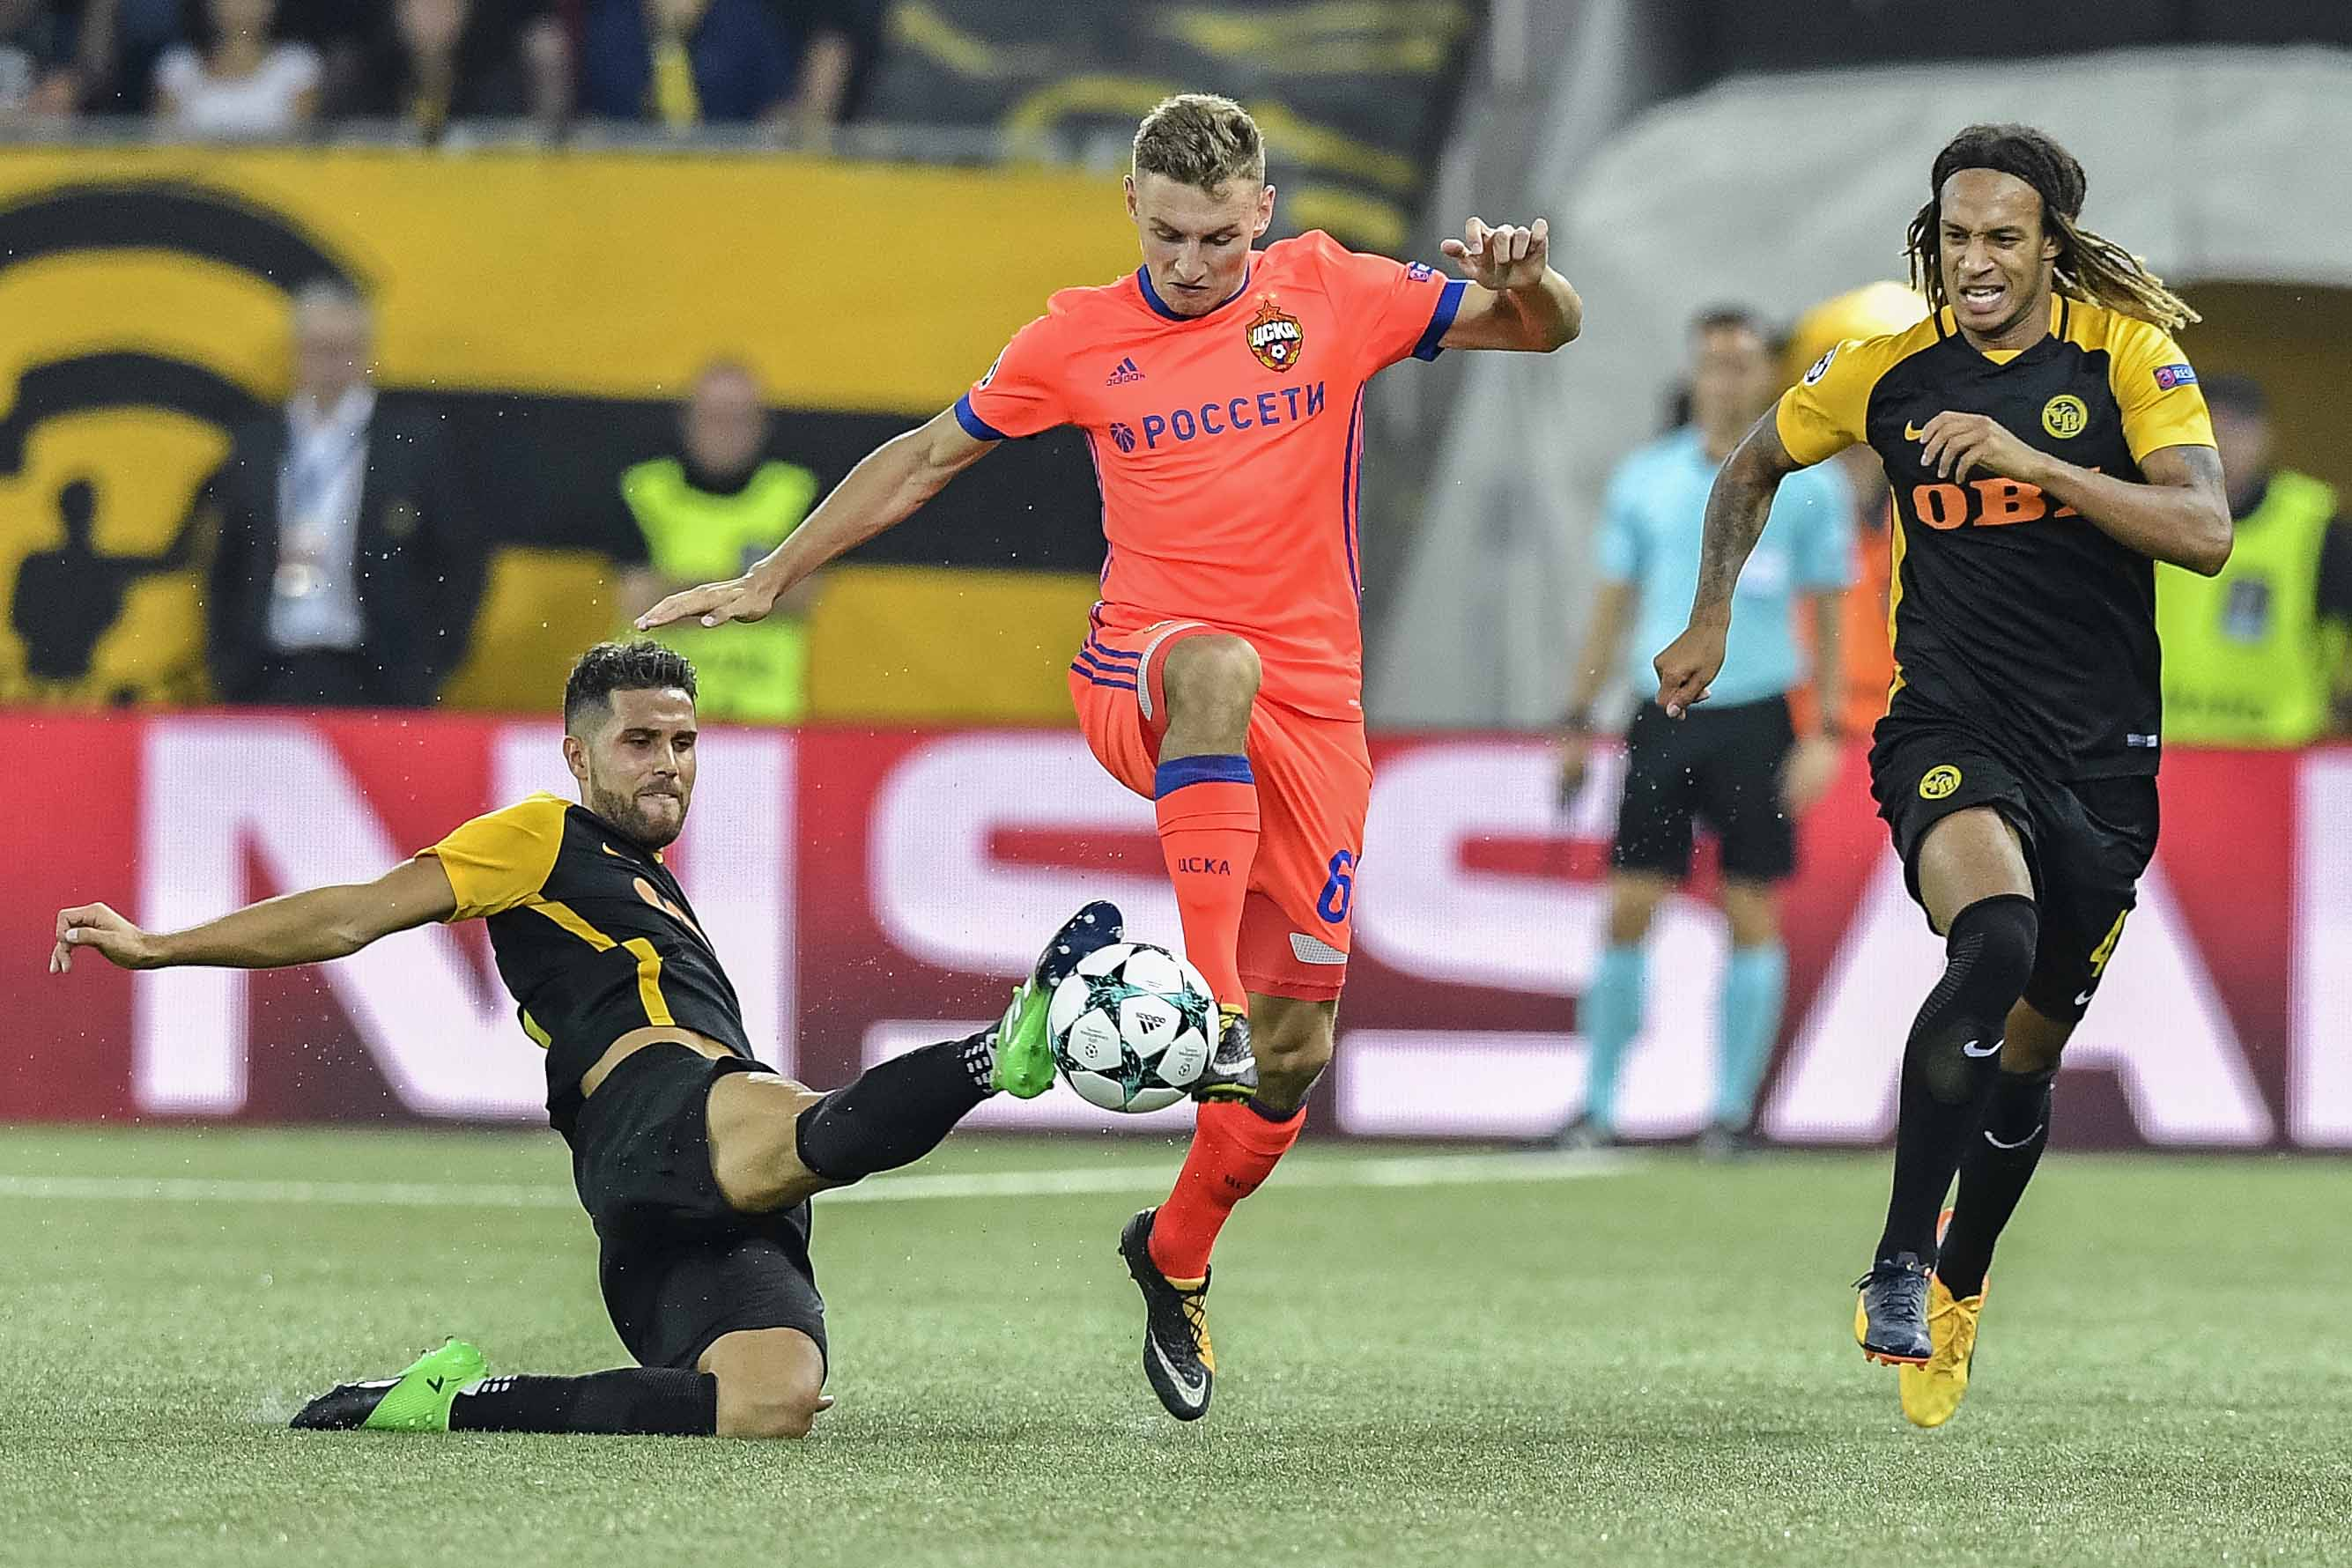 Bern's Leonardo Bertone (left) and Kevin Mbabu (right) challenge for the ball against Moscov's Fedor Chalov during a Champions League's qualifier first leg soccer match between BSC Young Boys and CSKA Moscov, in the Stade de Suisse Stadium in Bern, Switzerland on Tuesday